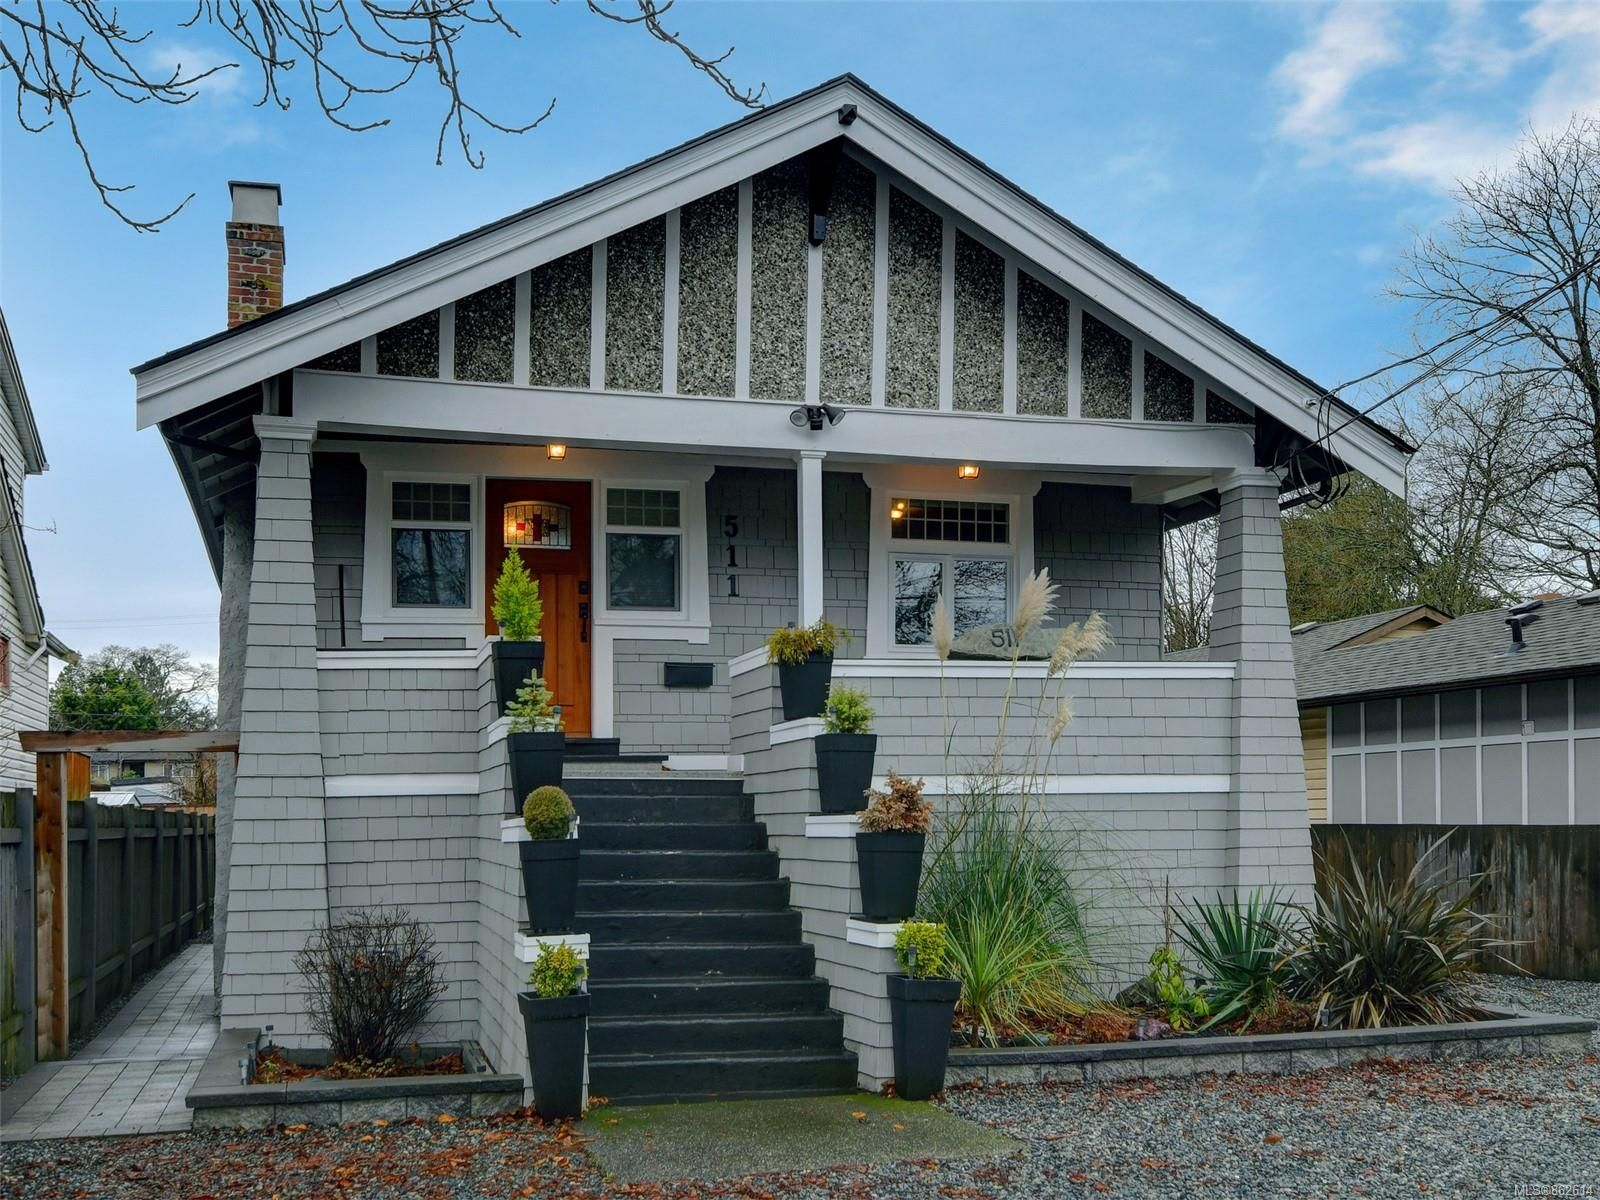 Main Photo: 511 Obed Ave in : SW Gorge House for sale (Saanich West)  : MLS®# 862614